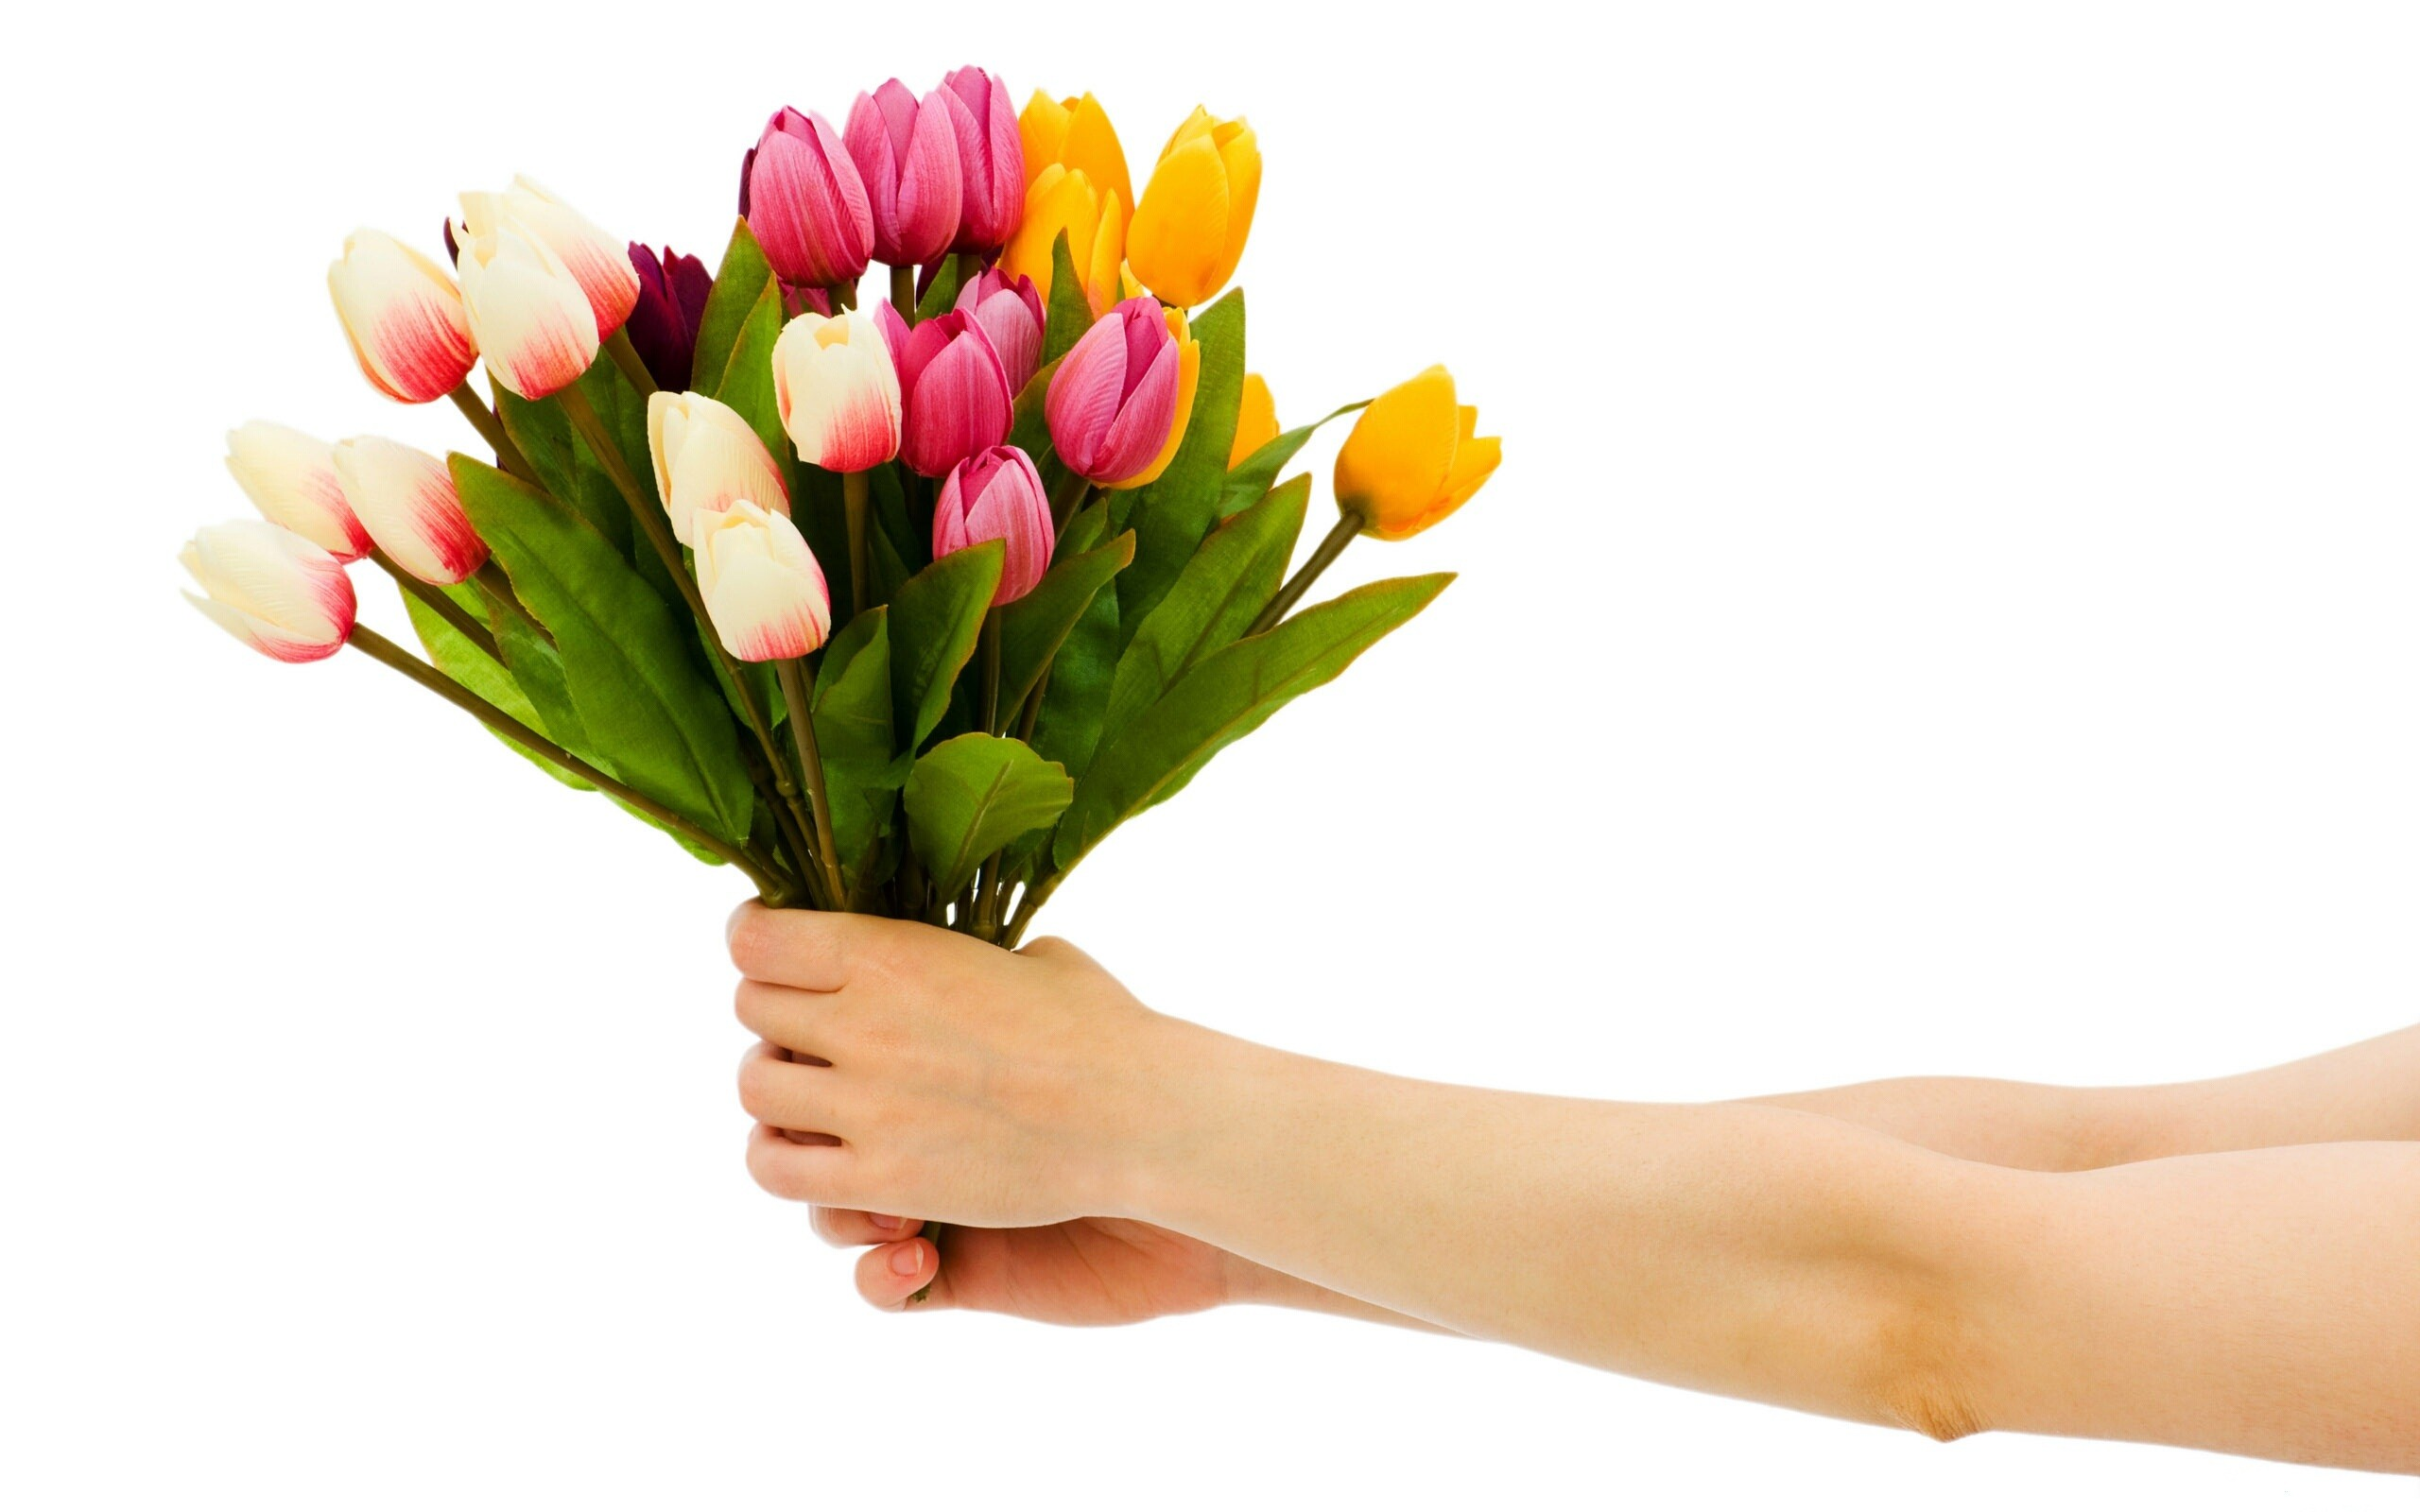 5564 Views 2380 Download Beautiful Buke Flowers in Hand HD Wallpapers